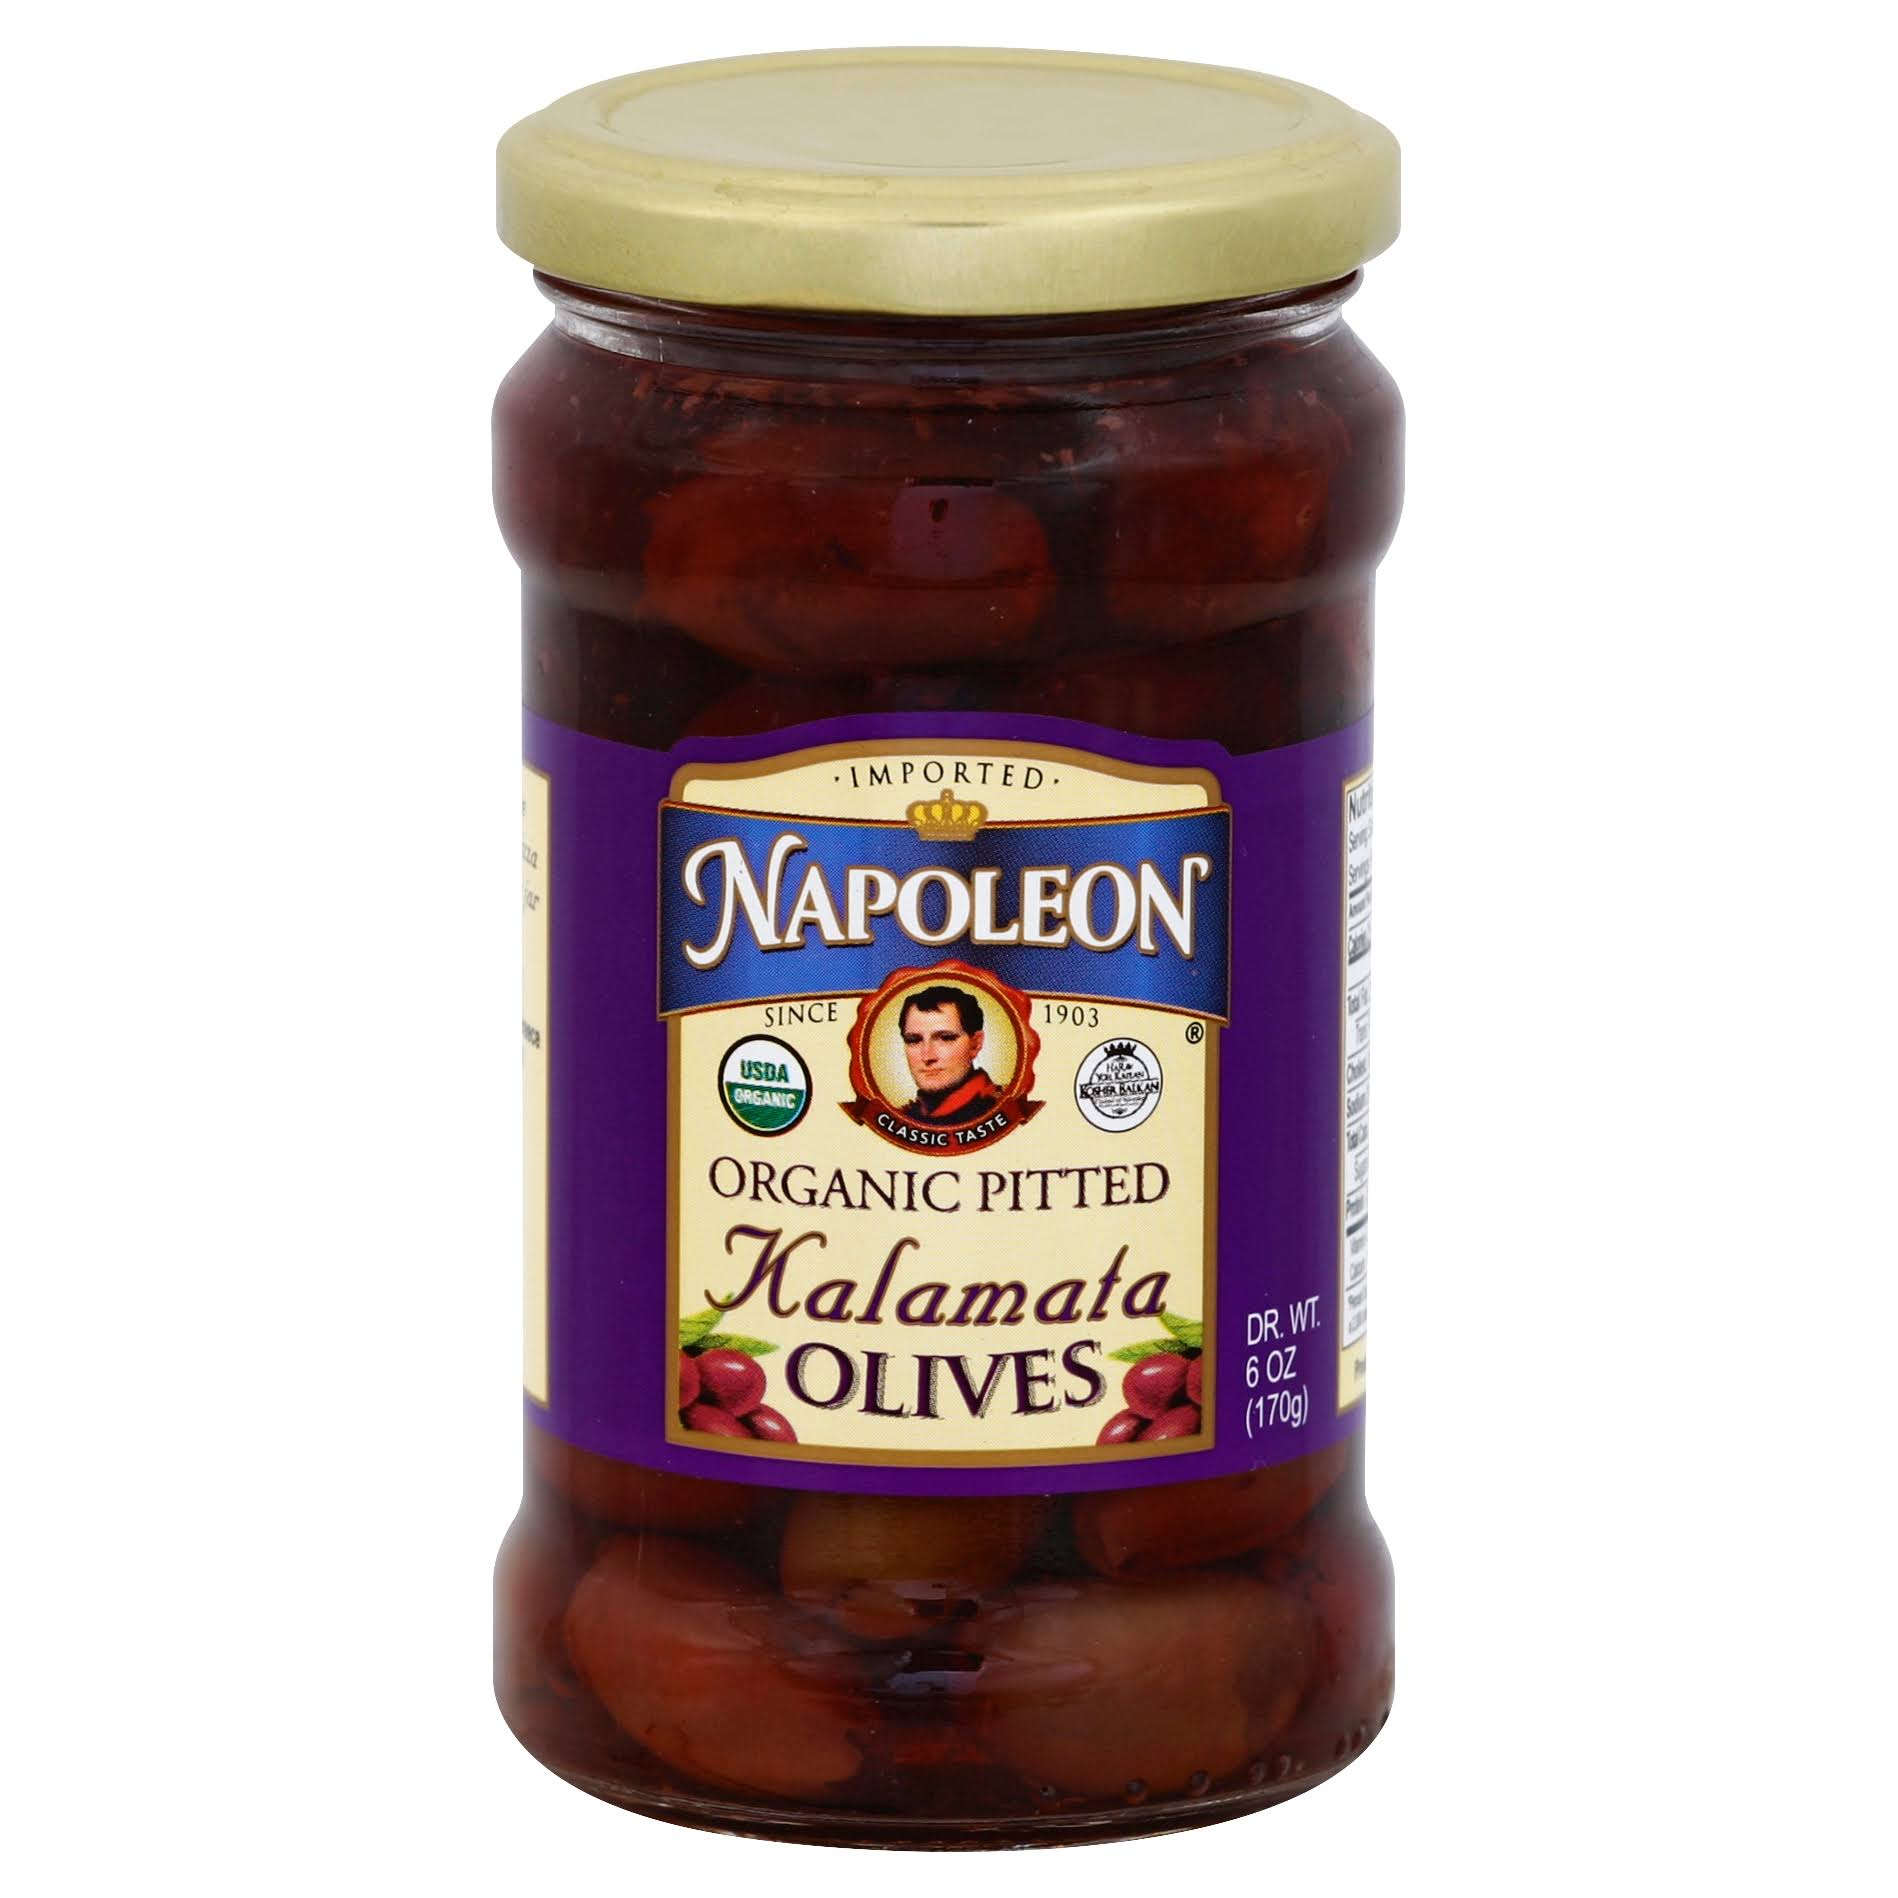 Napoleon Olives, Organic, Kalamata, Pitted - 6 oz